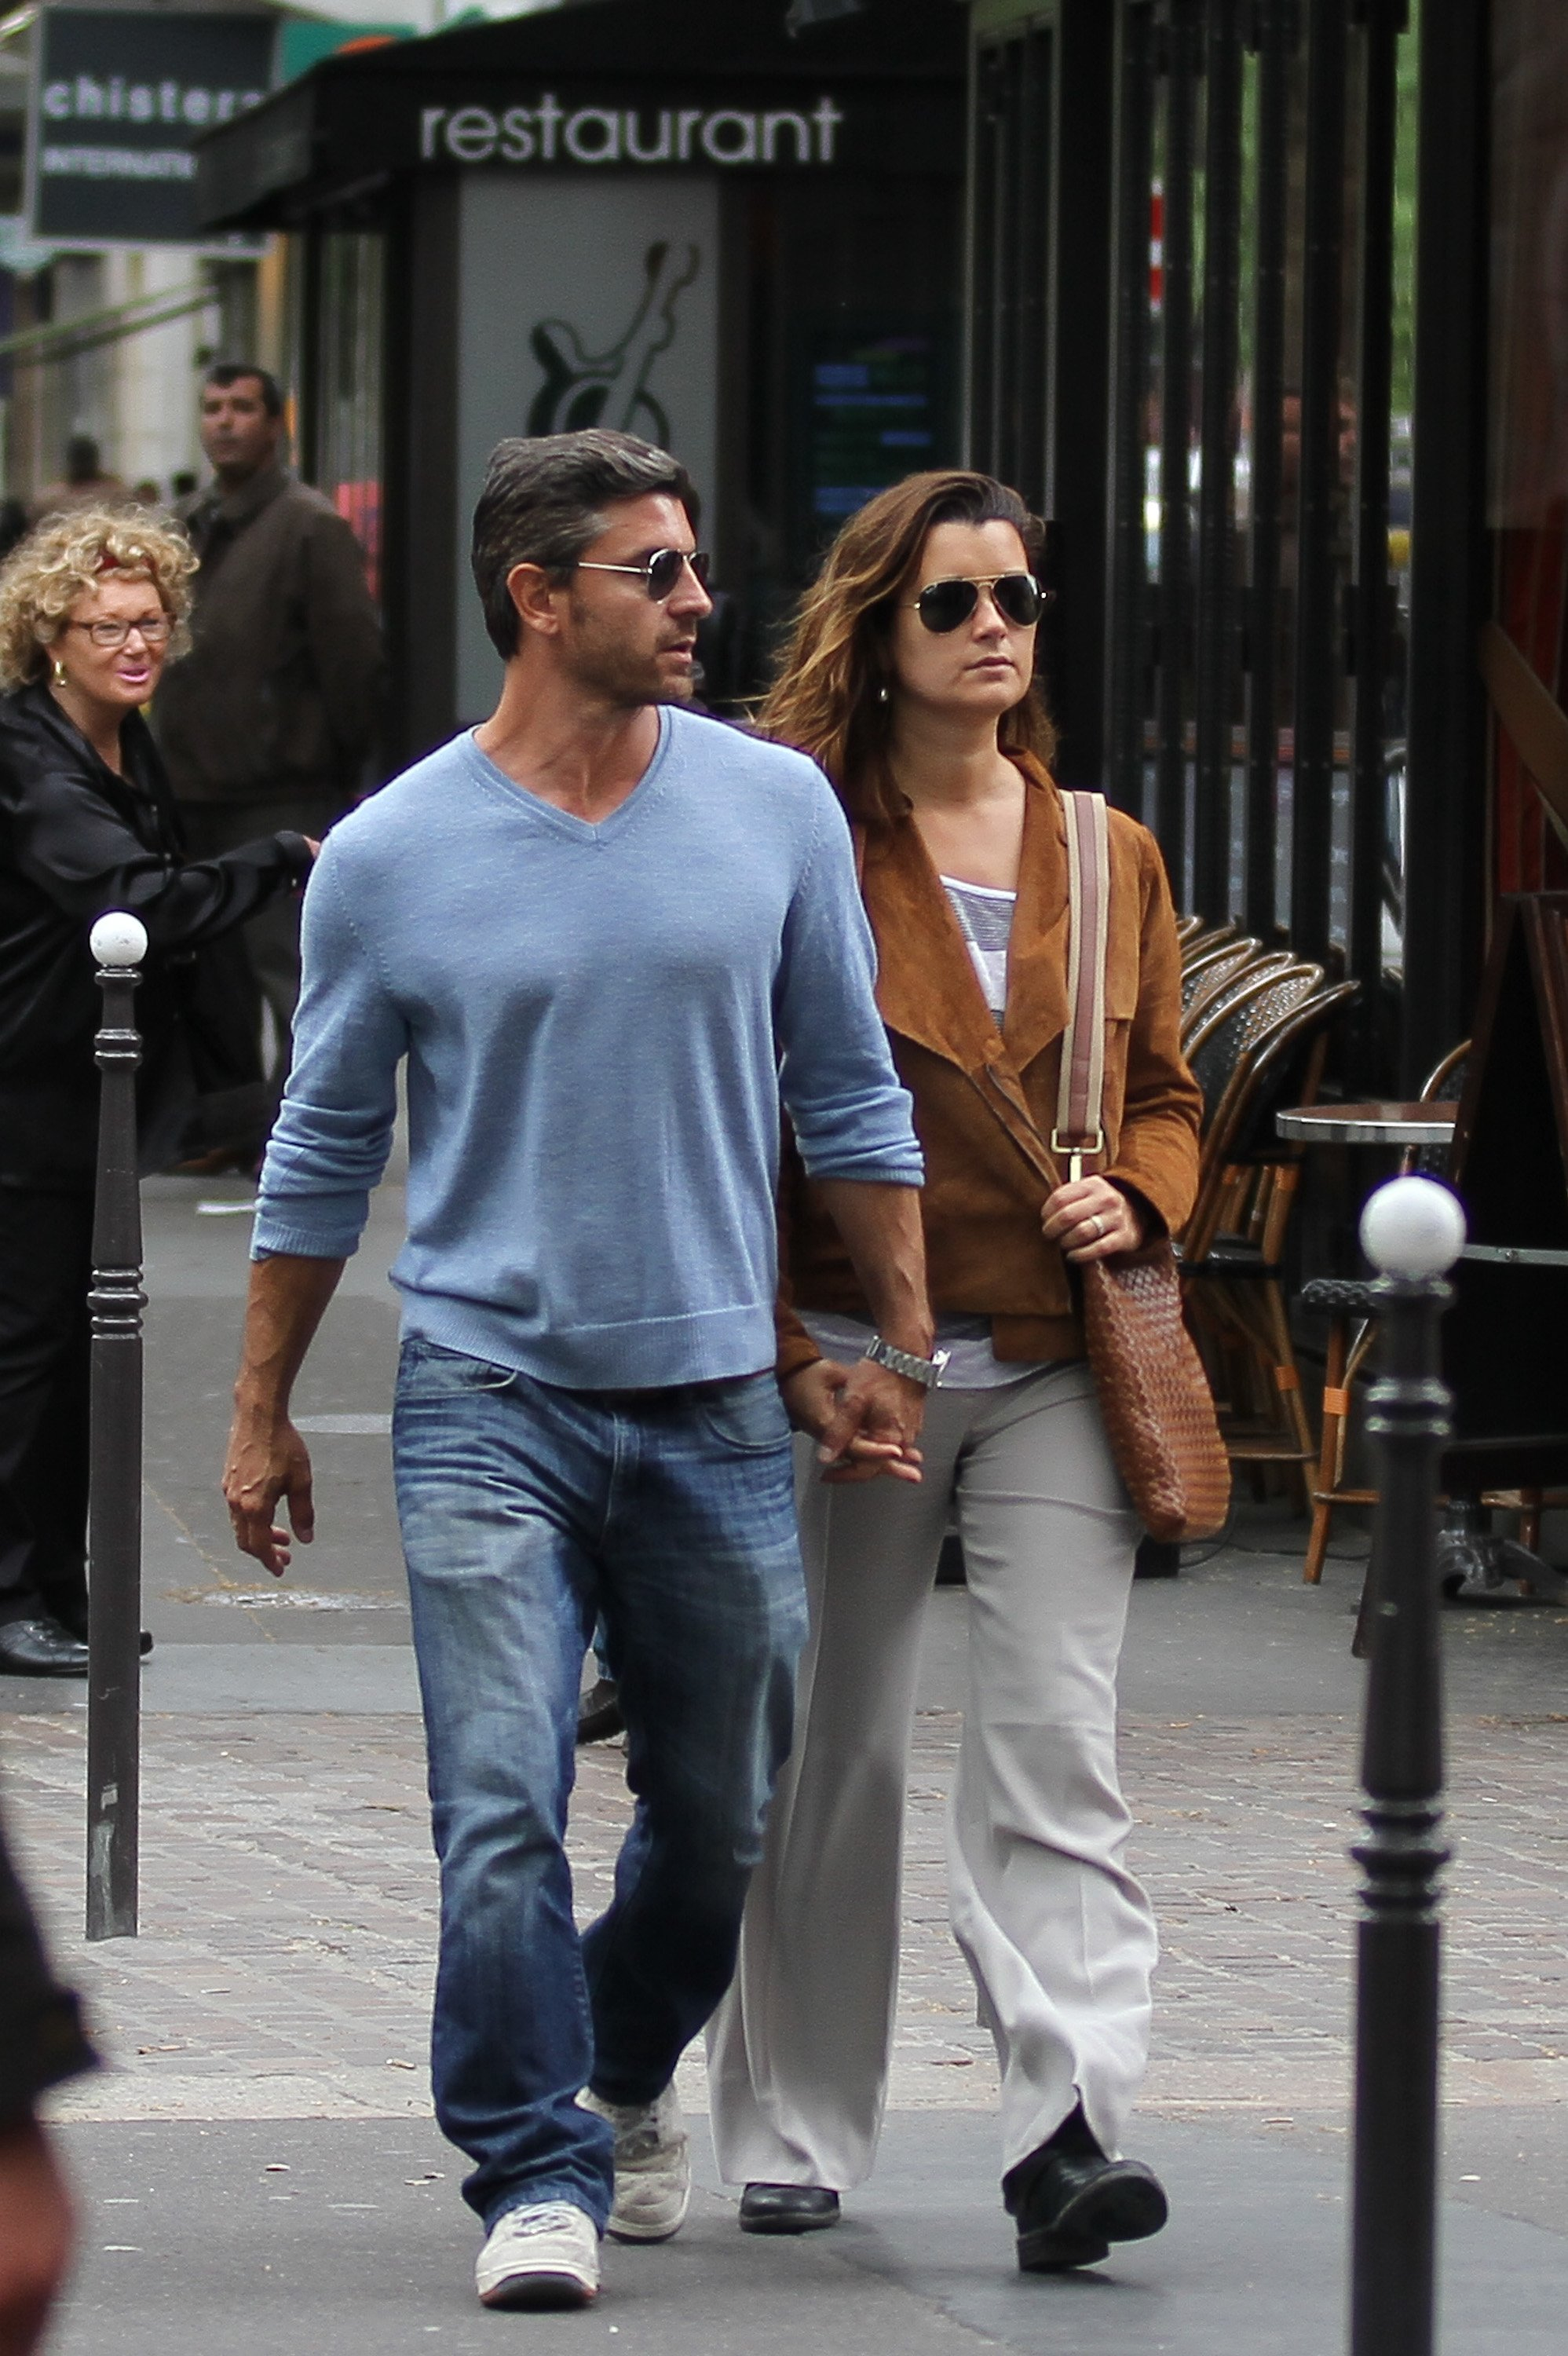 Cote de Pablo and boyfriend Diego Serrano are sighted strolling on 'Rue de Rivoli' on May 9, 2012 | Photo: GettyImages